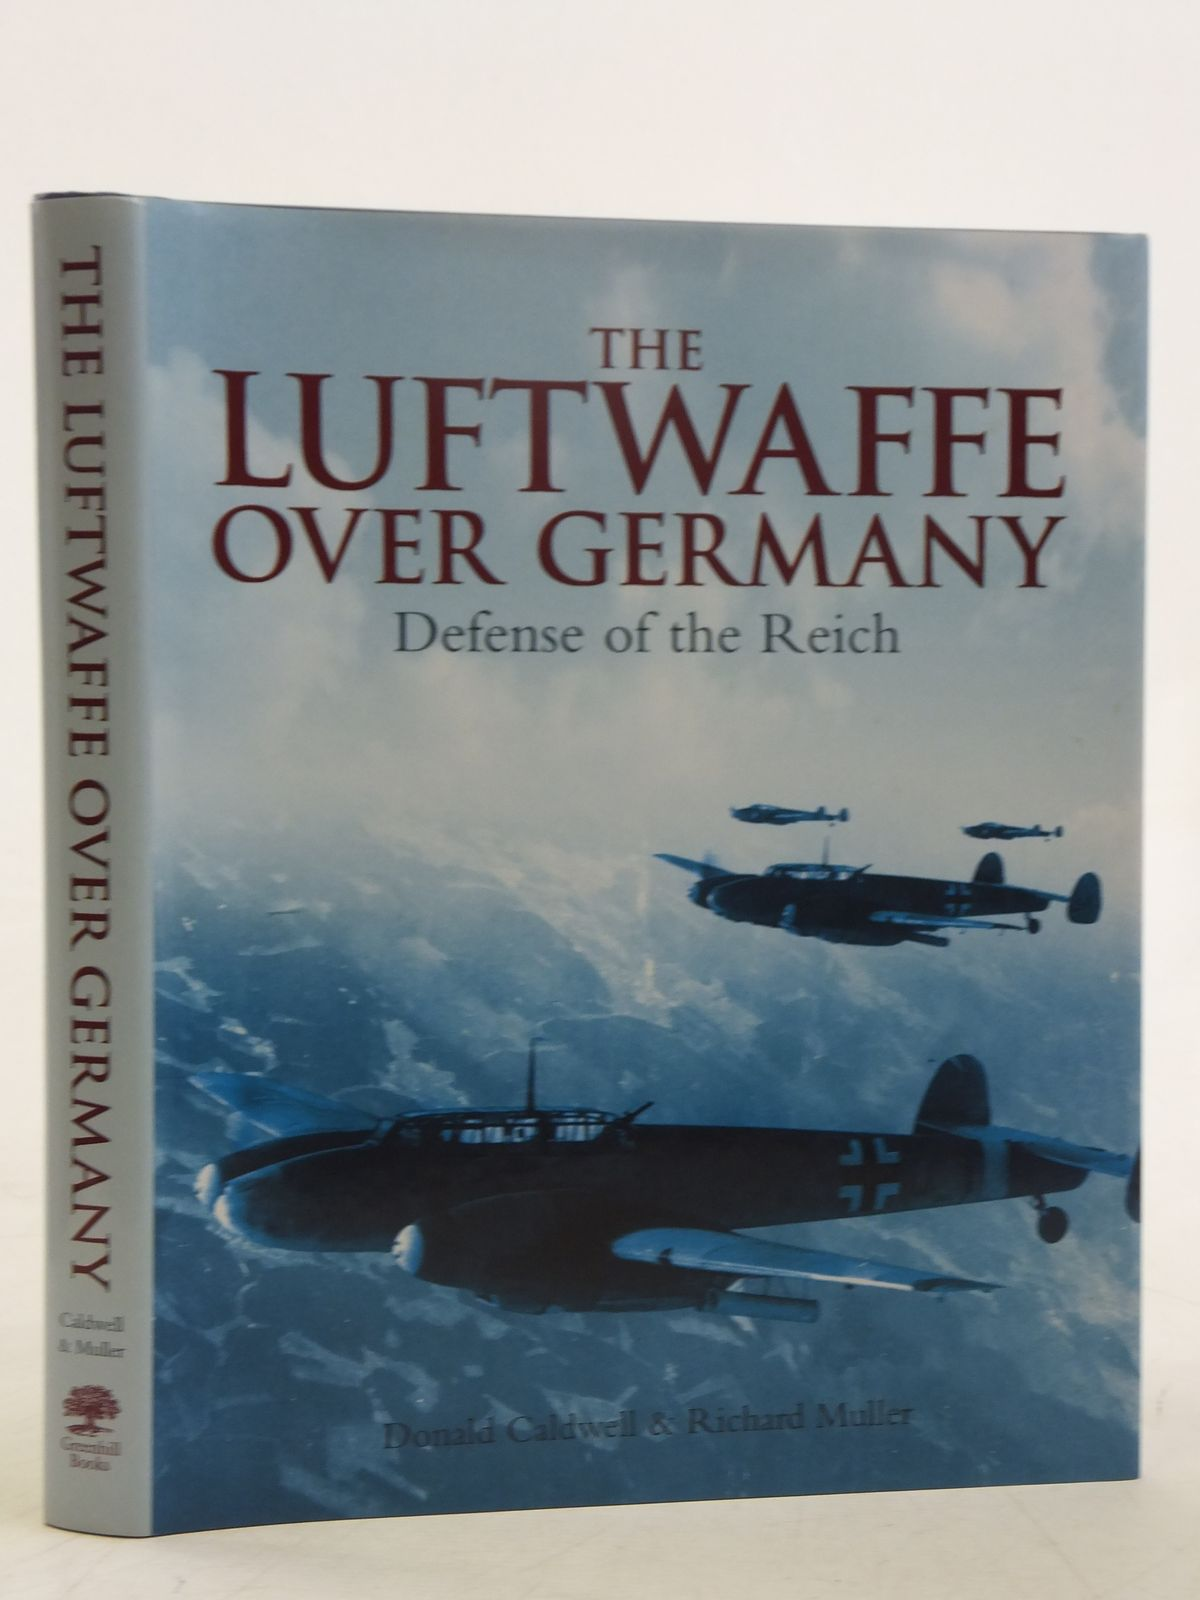 Photo of THE LUFTWAFFE OVER GERMANY DEFENSE OF THE REICH written by Caldwell, Donald<br />Muller, Richard published by Greenhill Books (STOCK CODE: 2118127)  for sale by Stella & Rose's Books